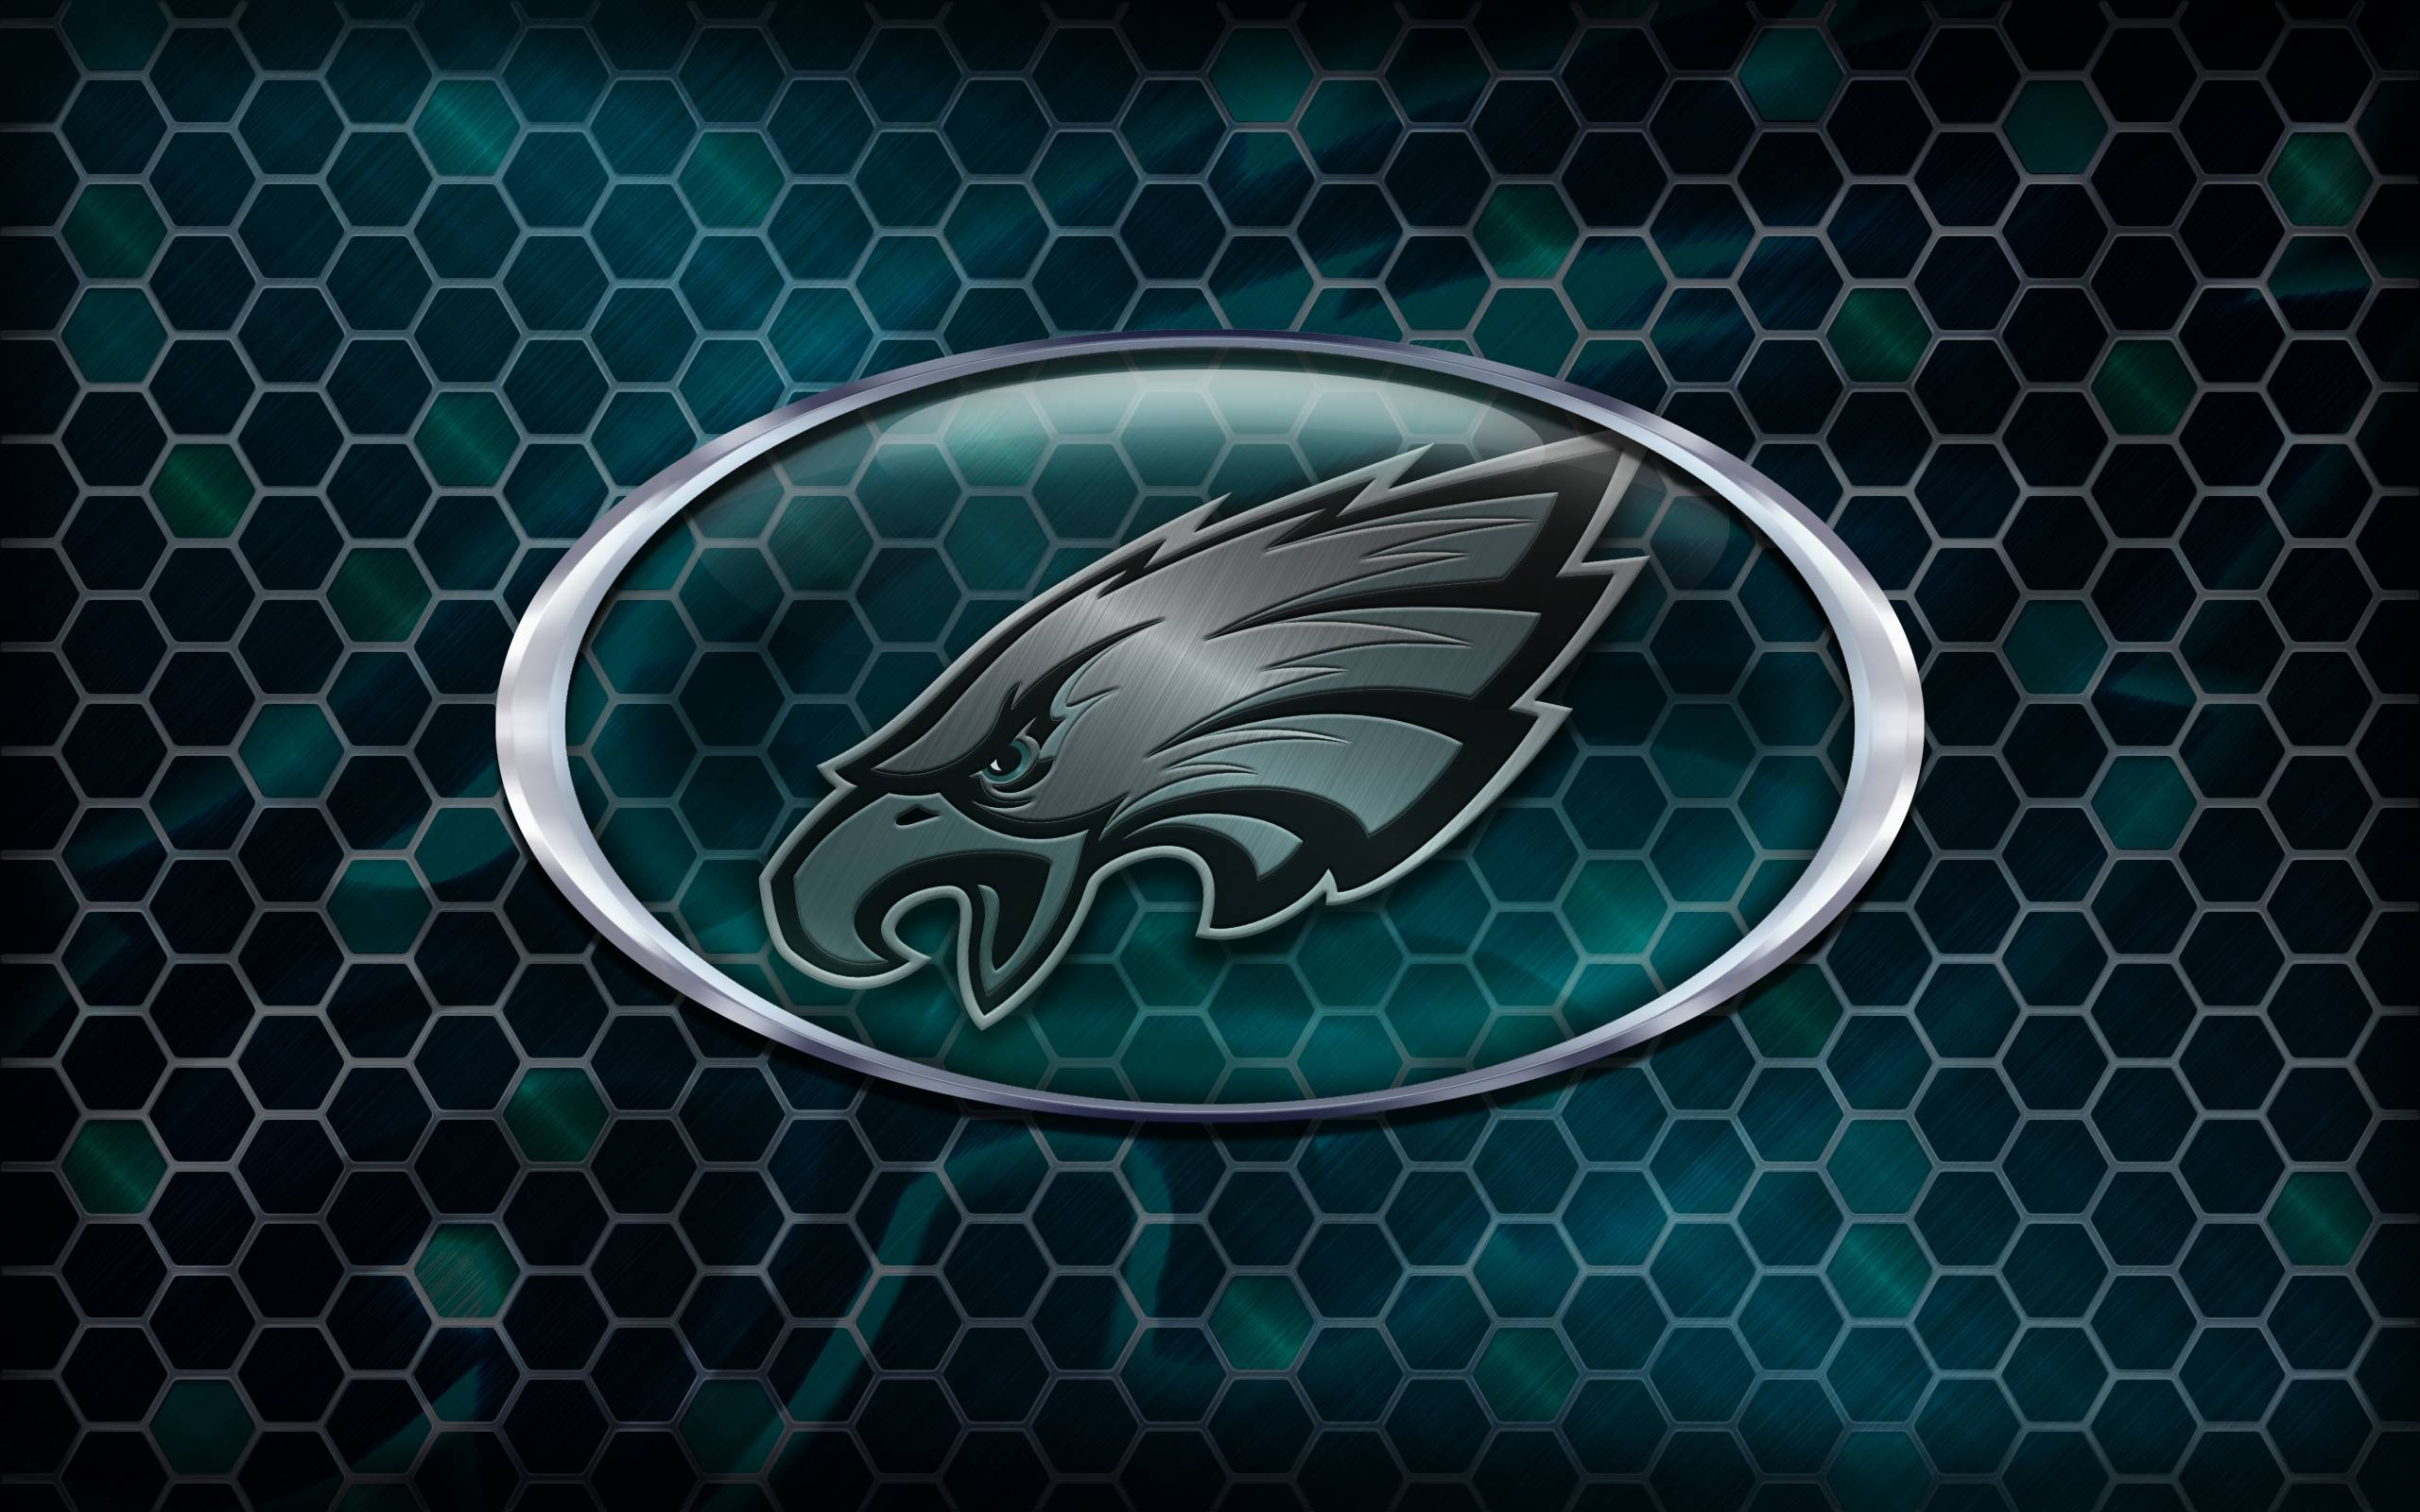 Philadelphia Eagles Logo By Graffitimaster Funny Wallpapers Wallpapers